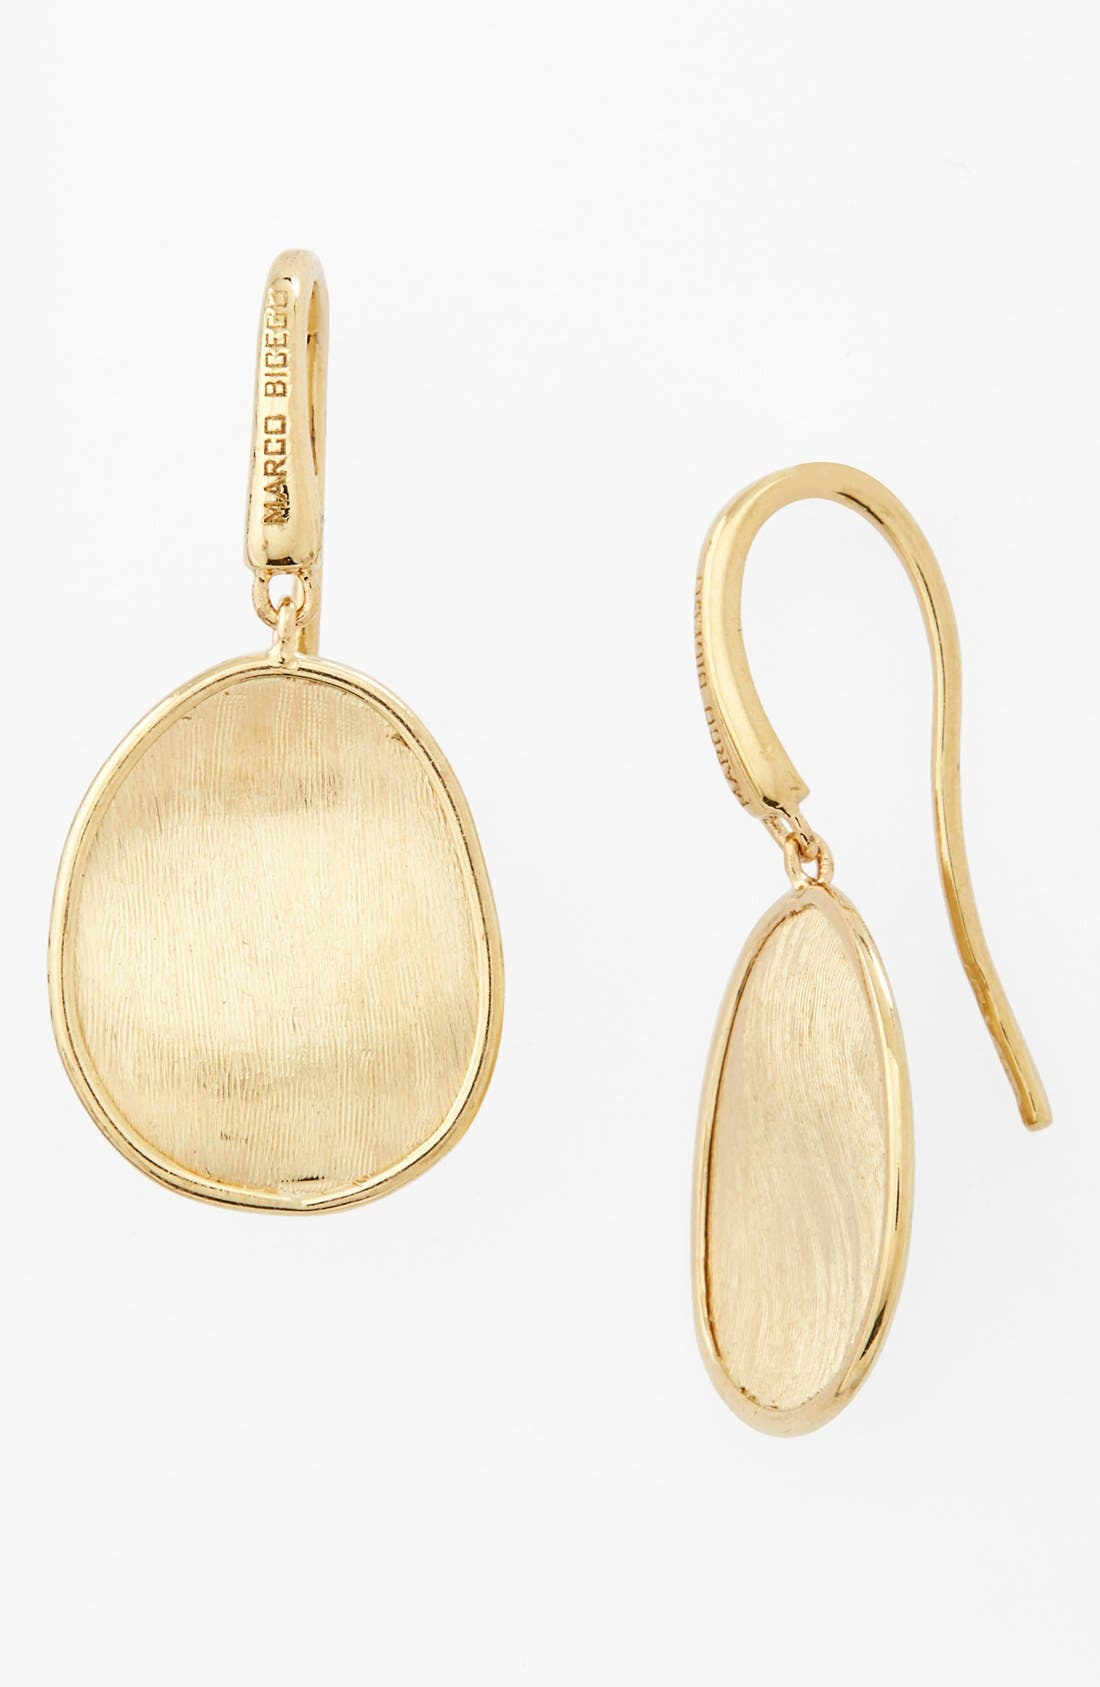 Main Image - Marco Bicego 'Lunaria' Drop Earrings